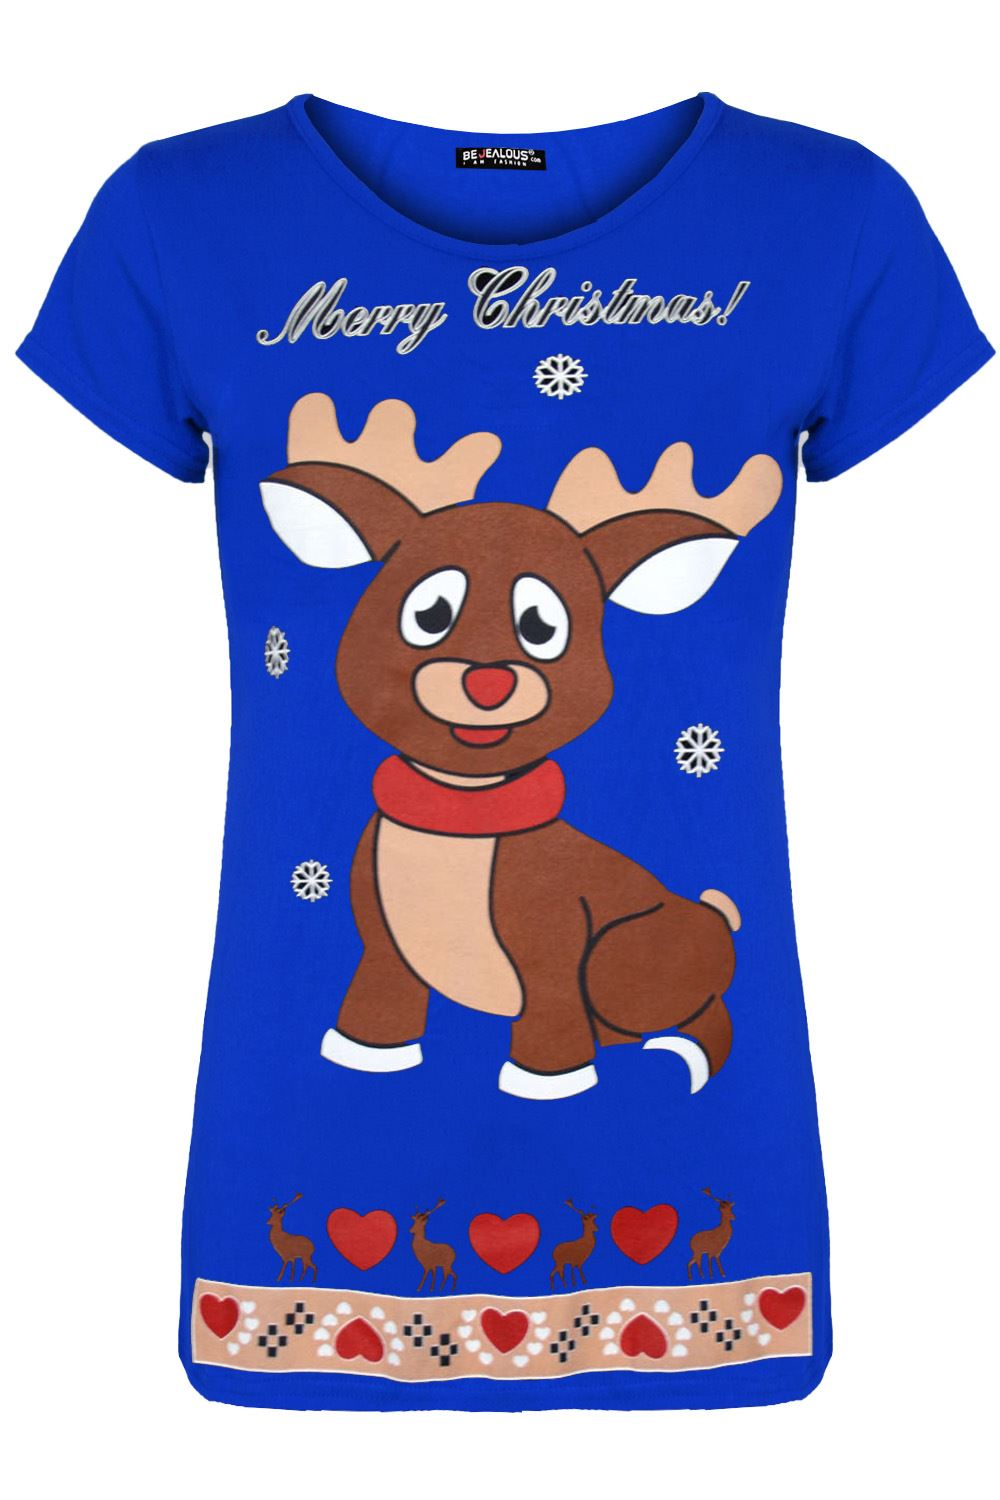 thumbnail 5 - Womens-Christmas-Xmas-Pullover-Elf-Candystick-Snowflakes-Ladies-T-Shirt-Tee-Top